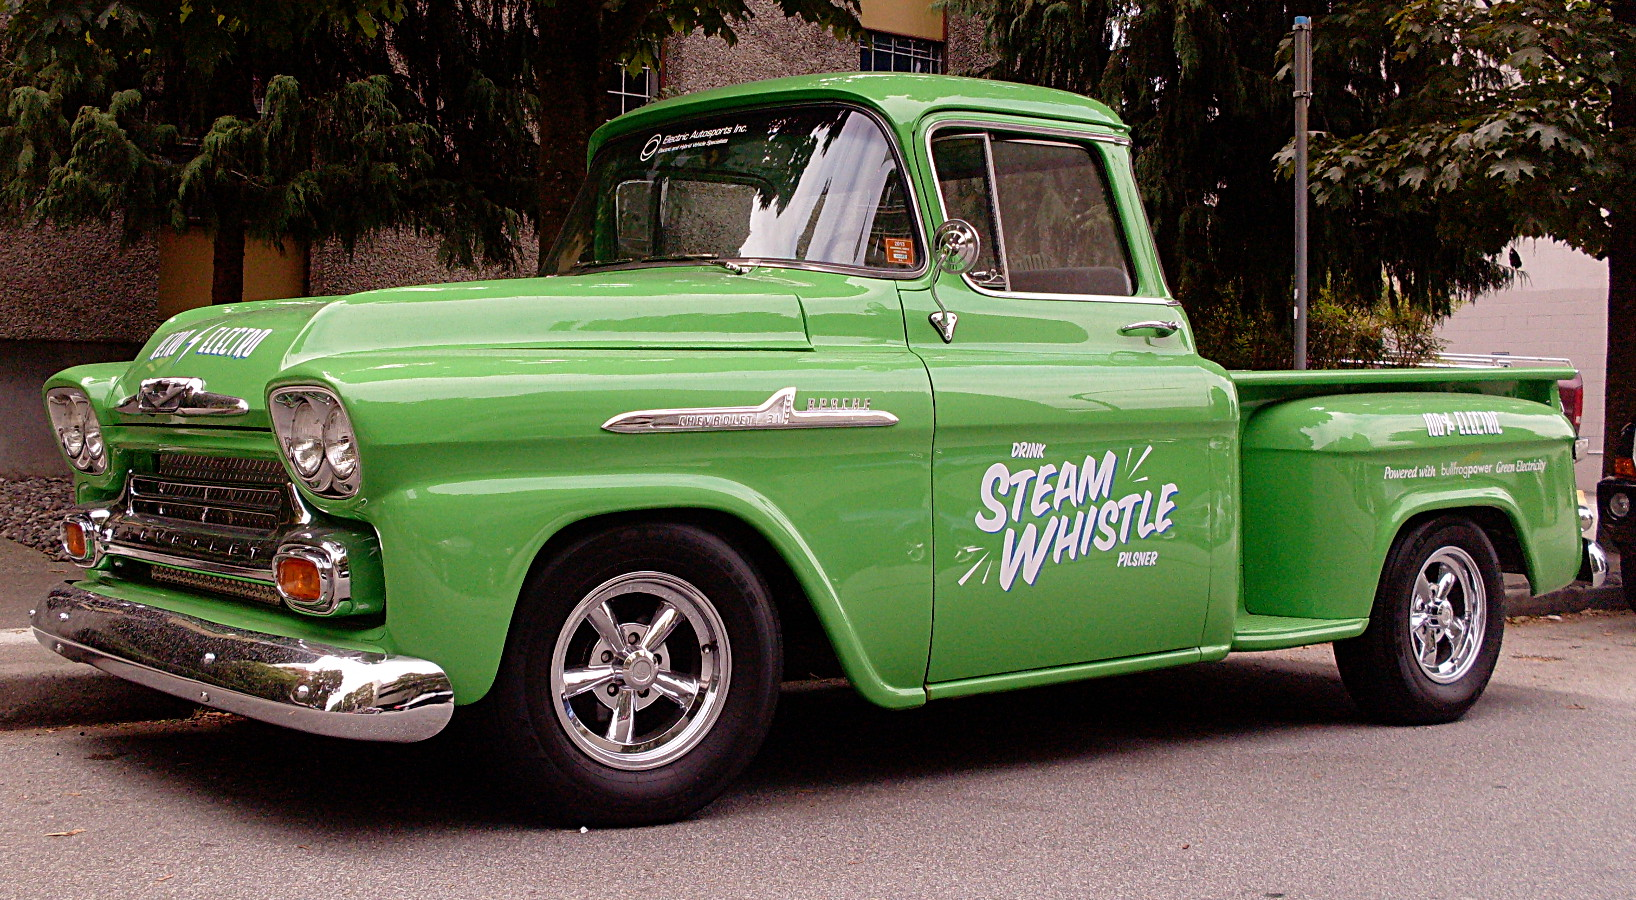 sqwabb: How green is this vintage pickup truck?